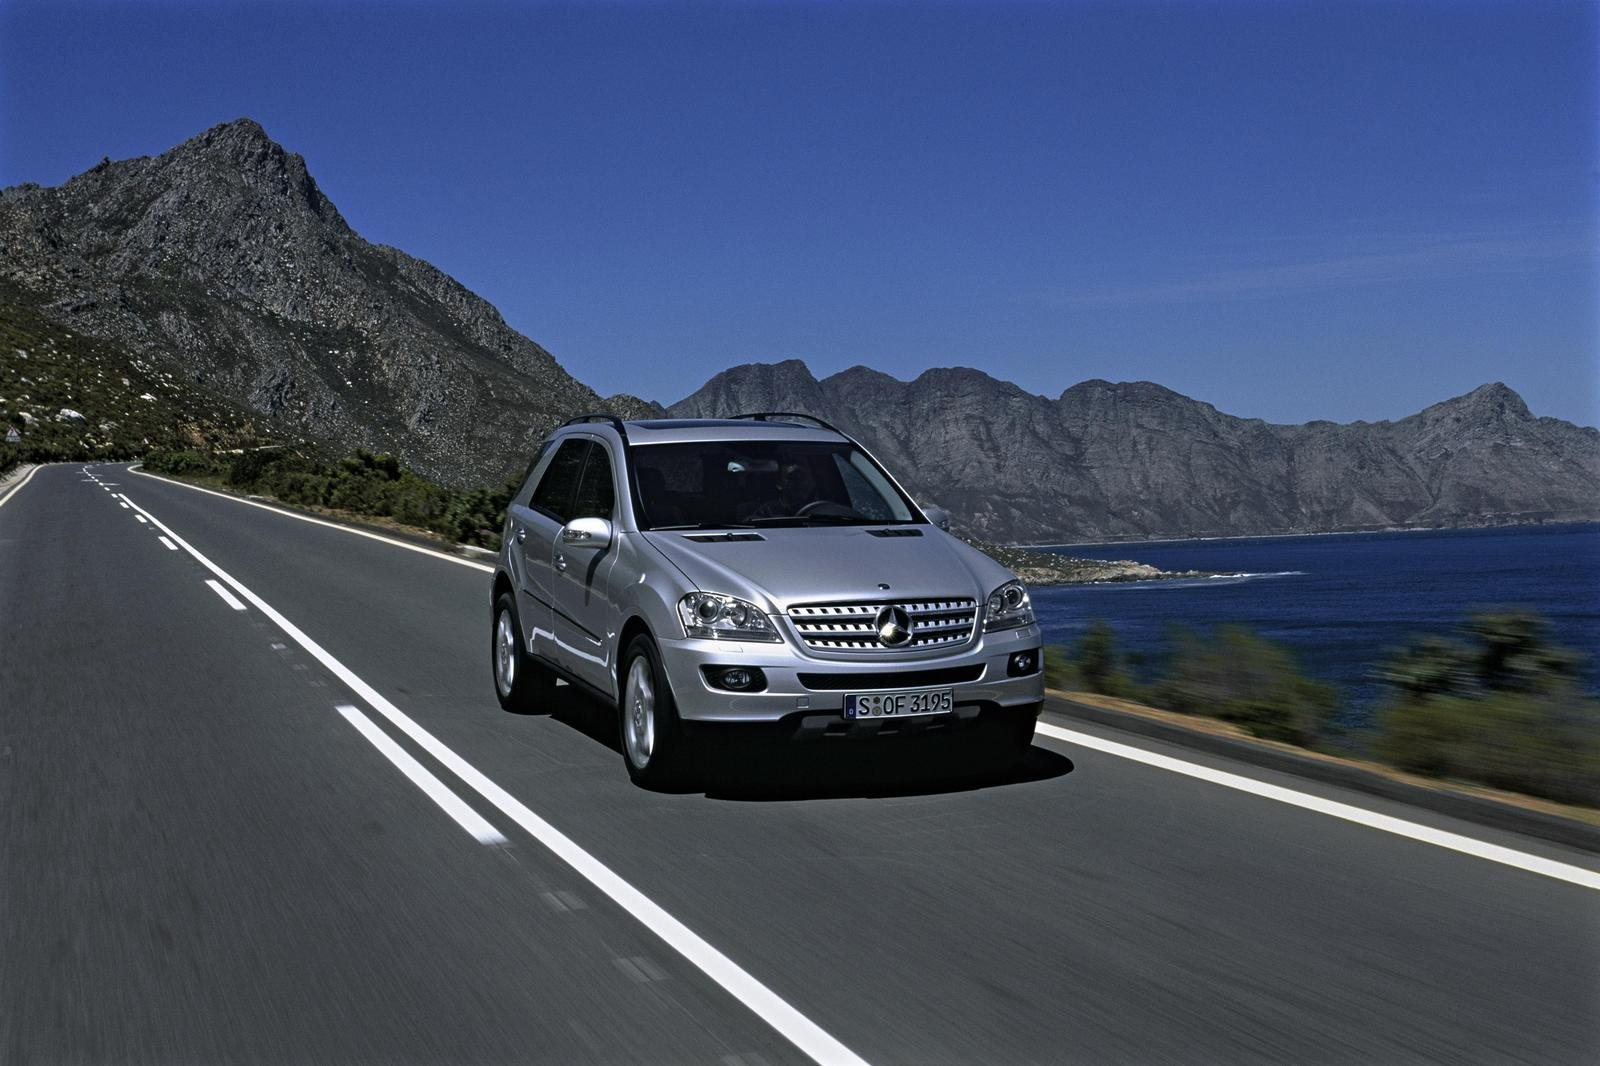 2007 mercedes ml 420 cdi 4matic picture 81233 car review top speed. Black Bedroom Furniture Sets. Home Design Ideas